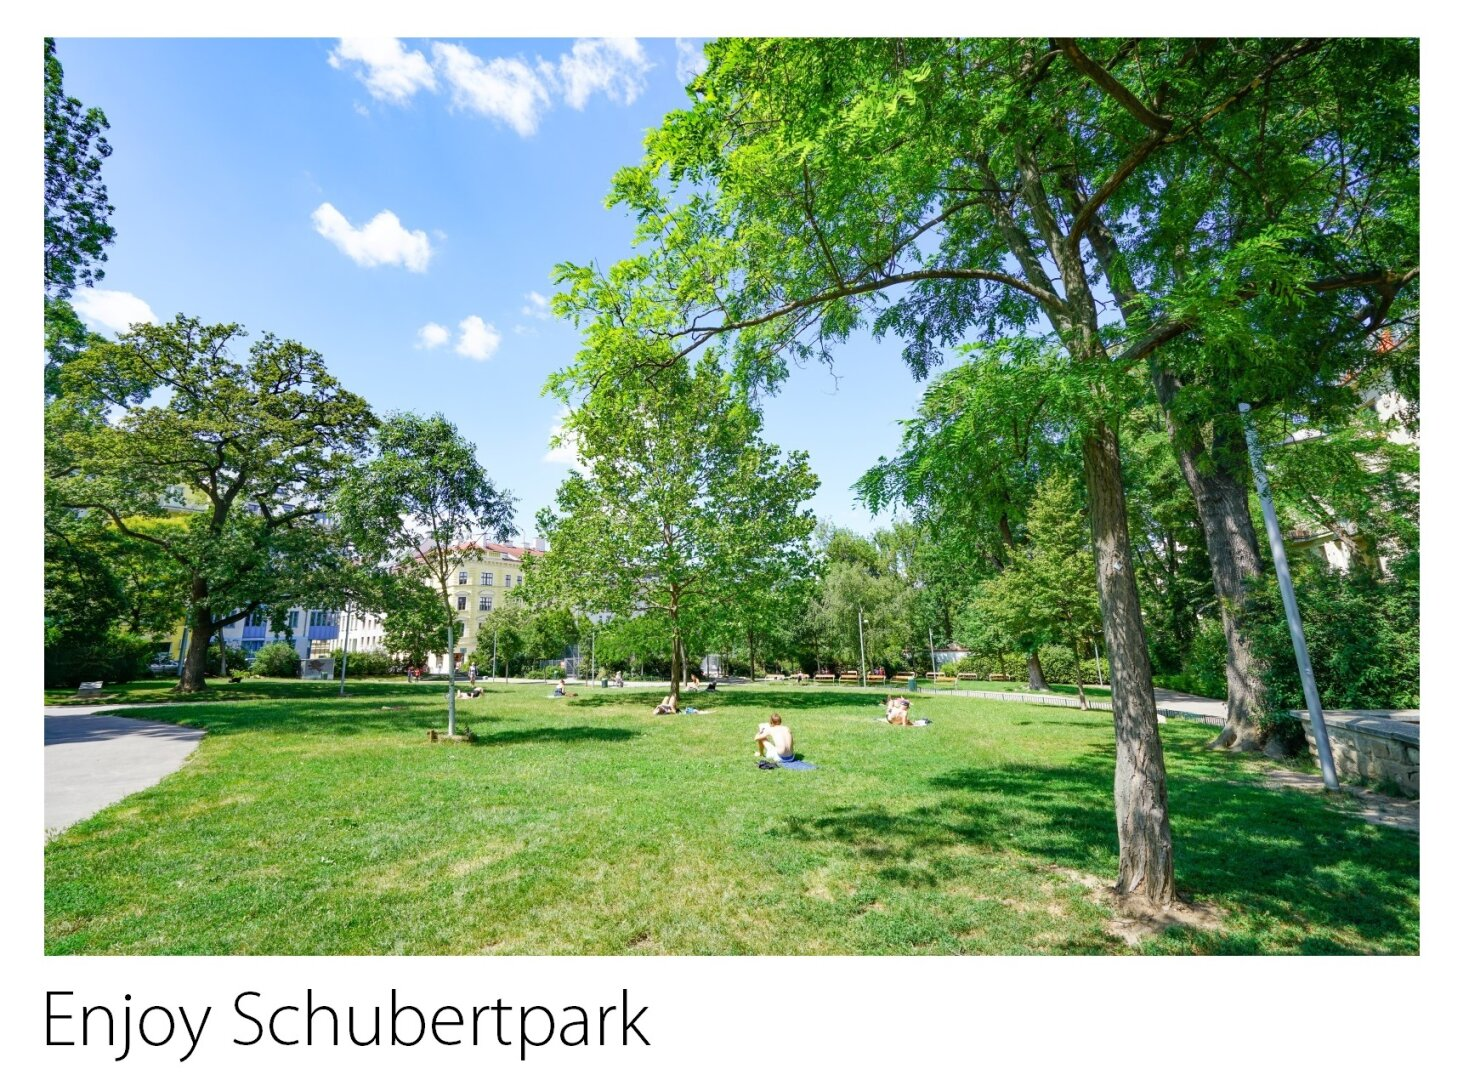 Enjoy Schubertpark